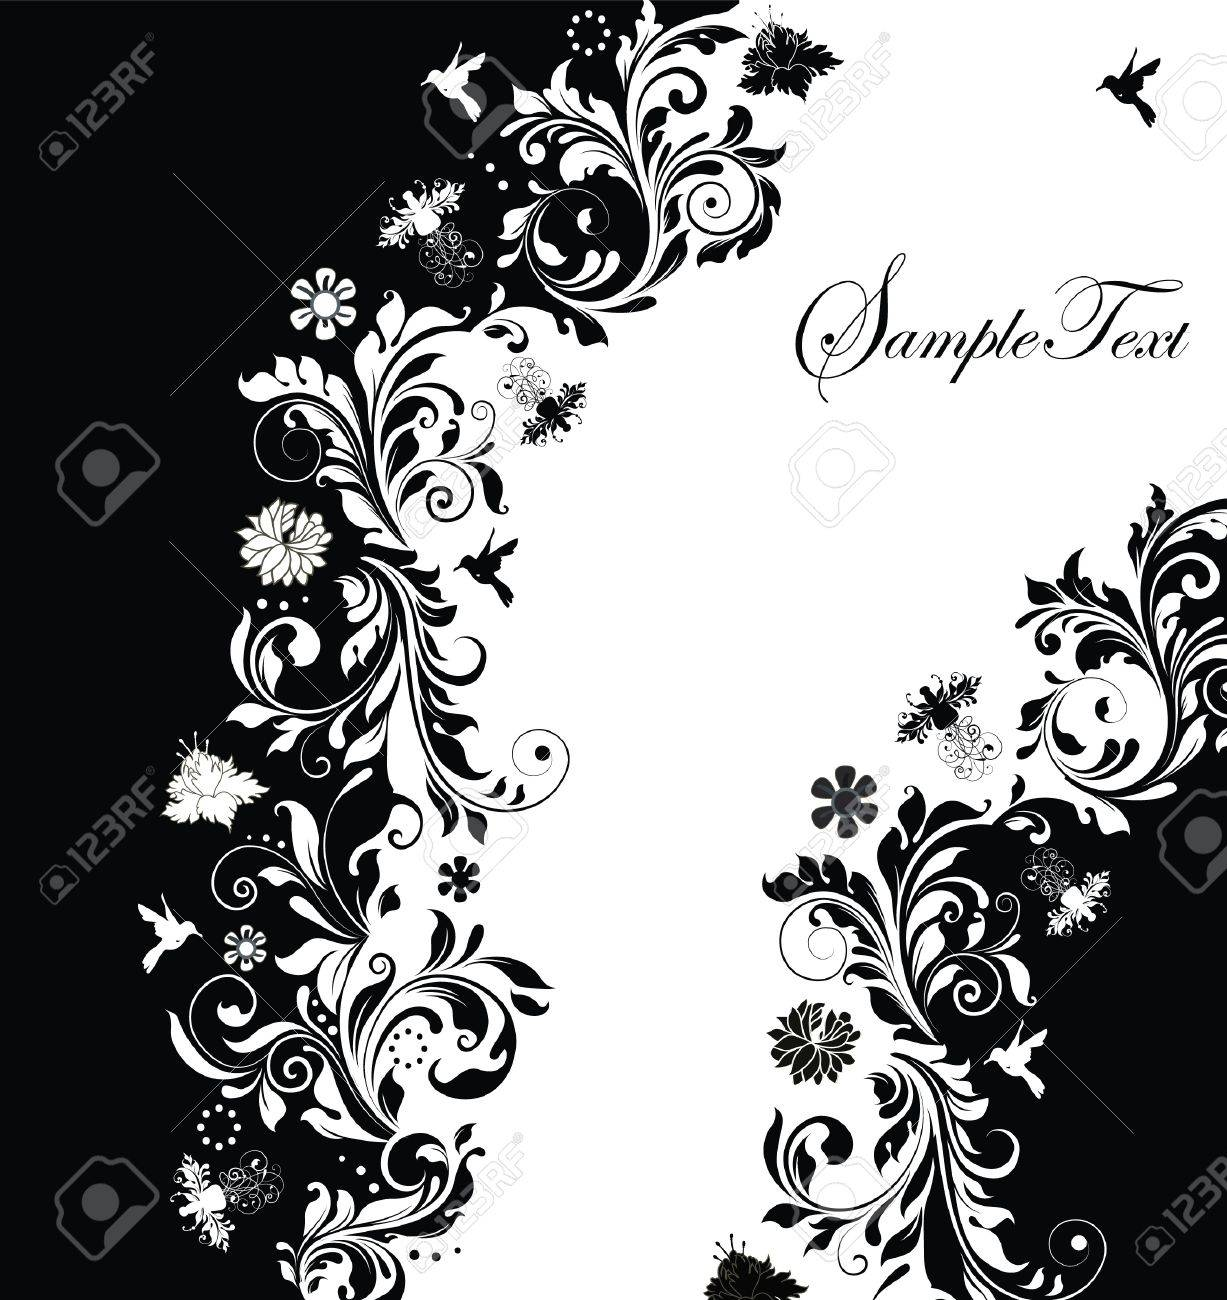 Abstract Black And White Floral Invitation Card Royalty Free – Black and White Invitation Cards